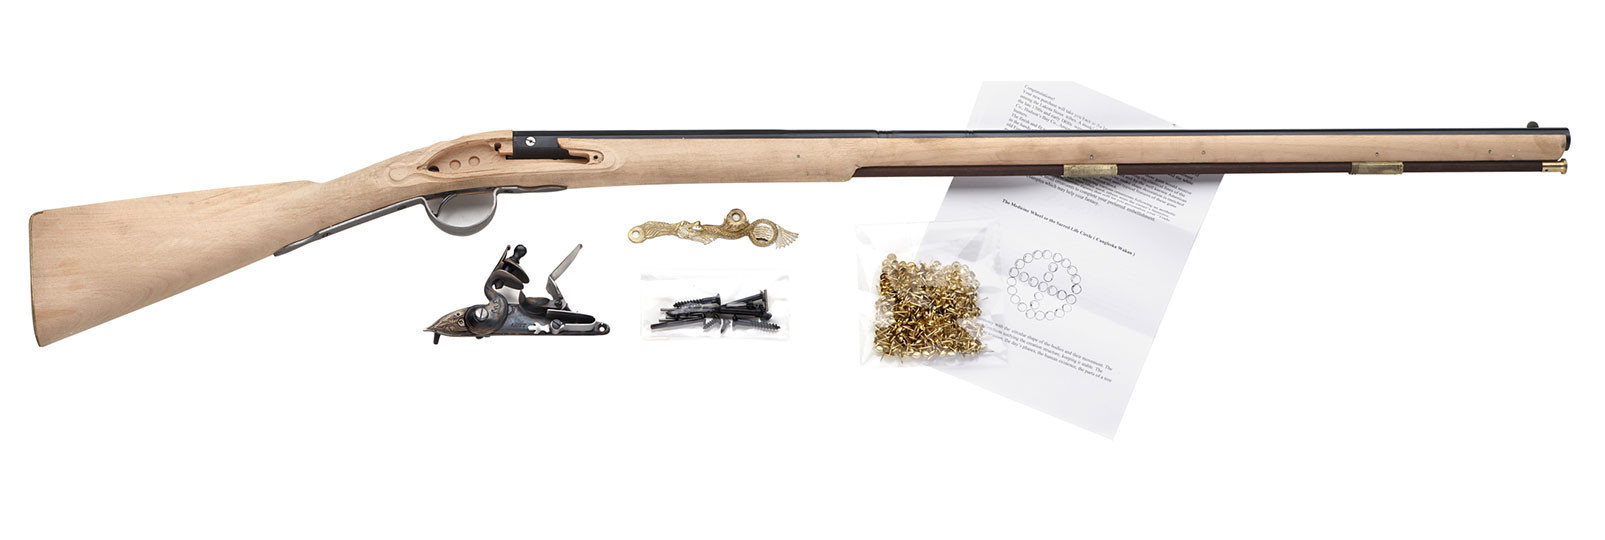 Muzzleloading Kit Rifles